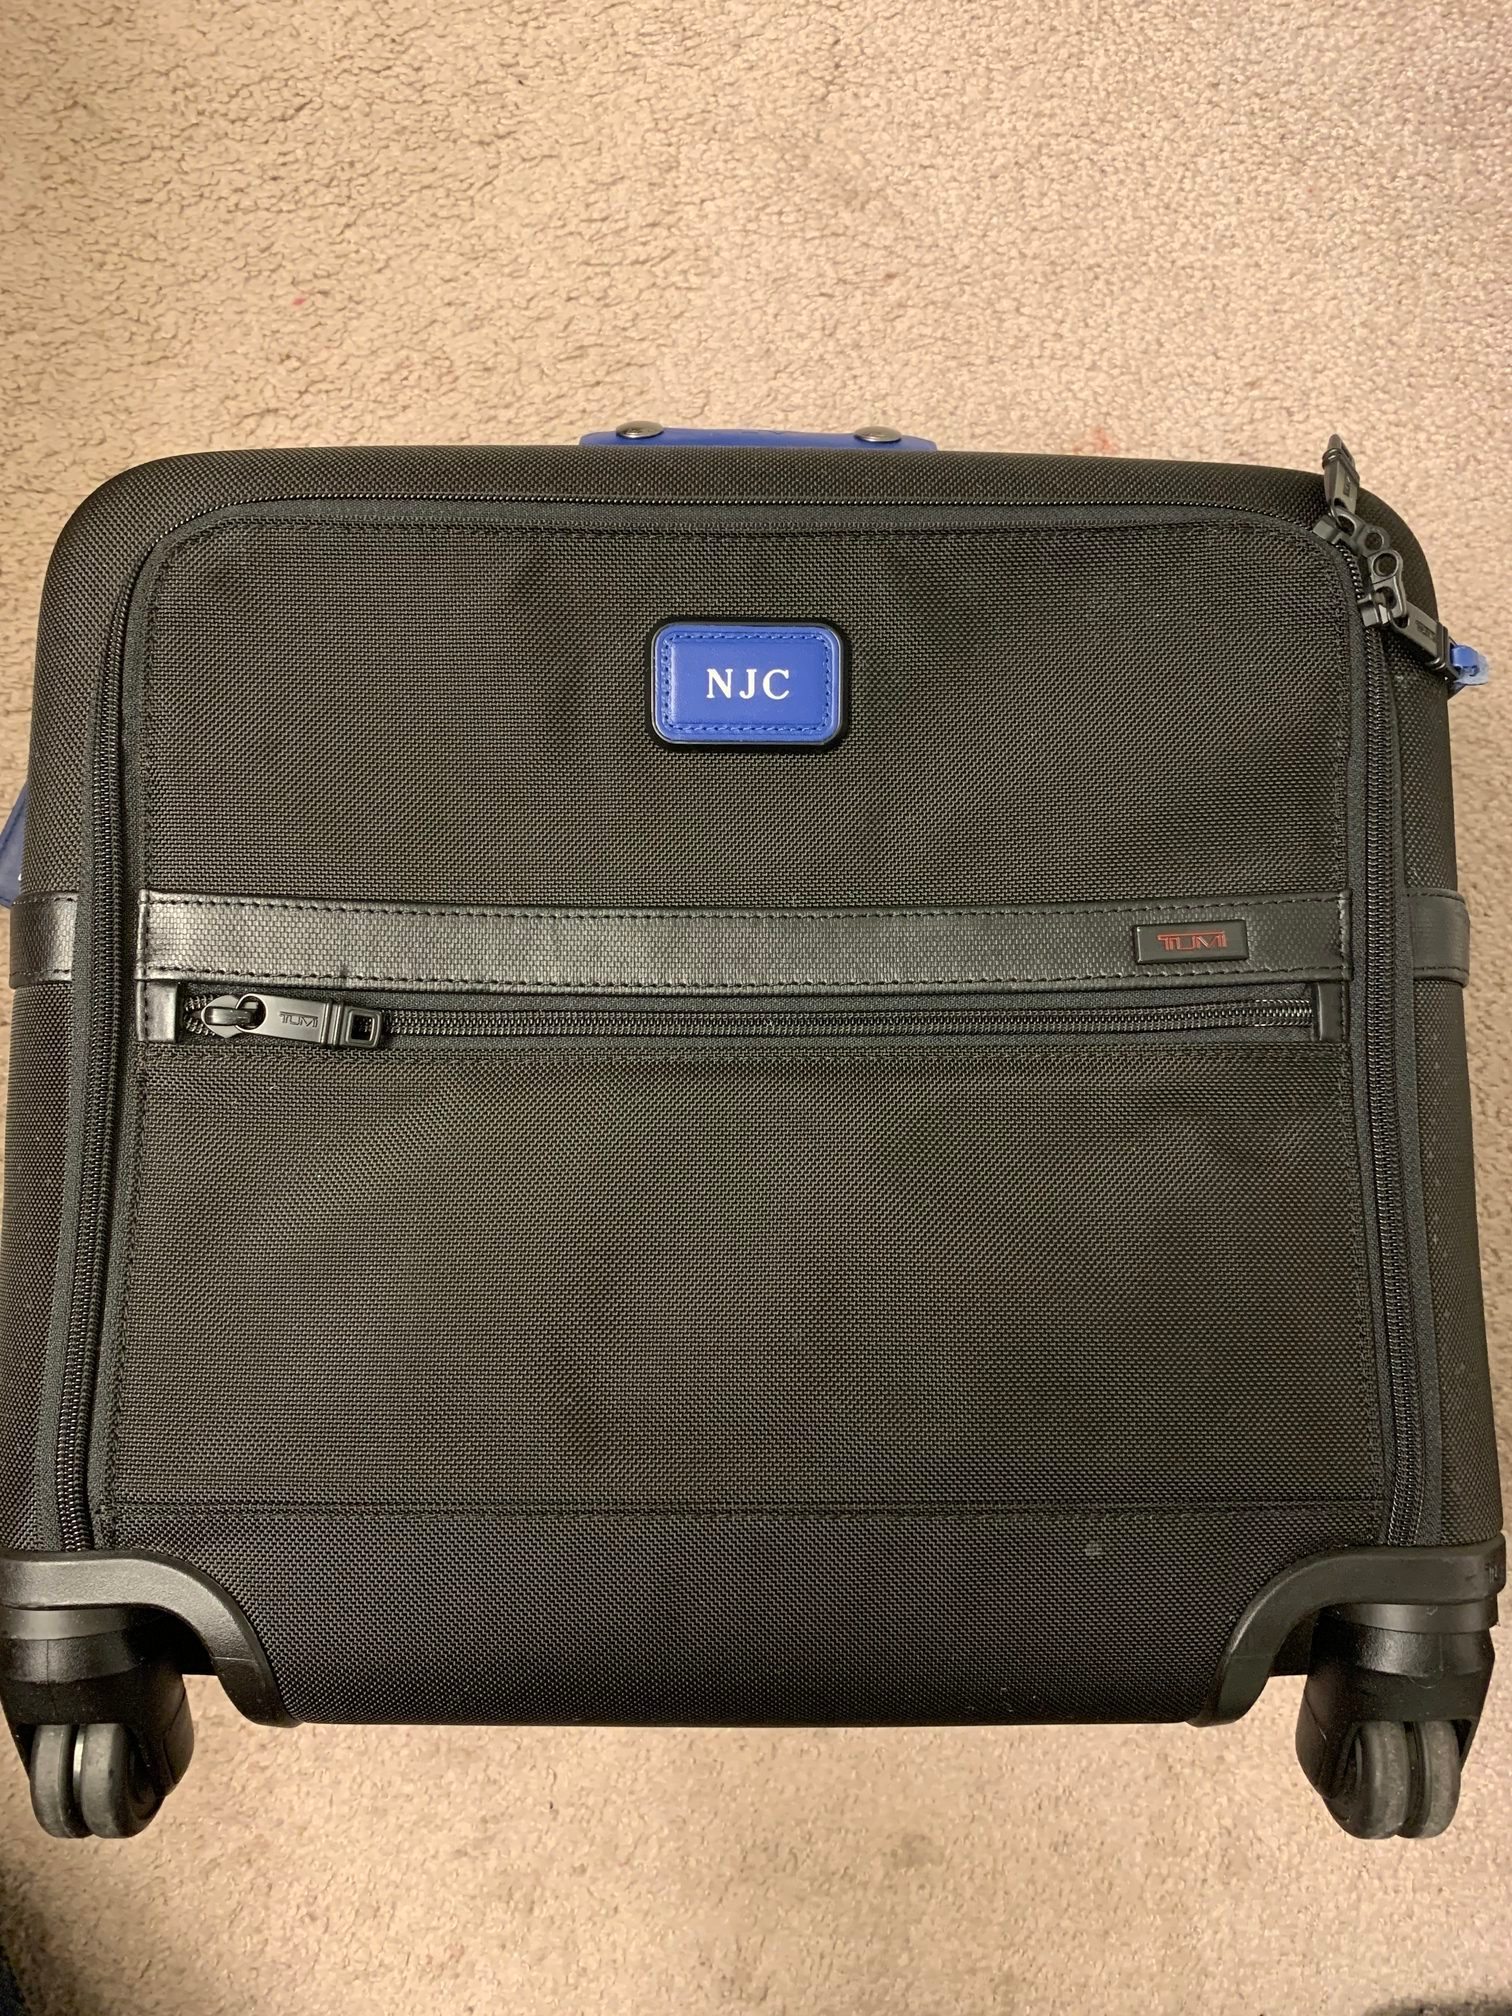 exterior of carry on pack carry on two weeks international travel